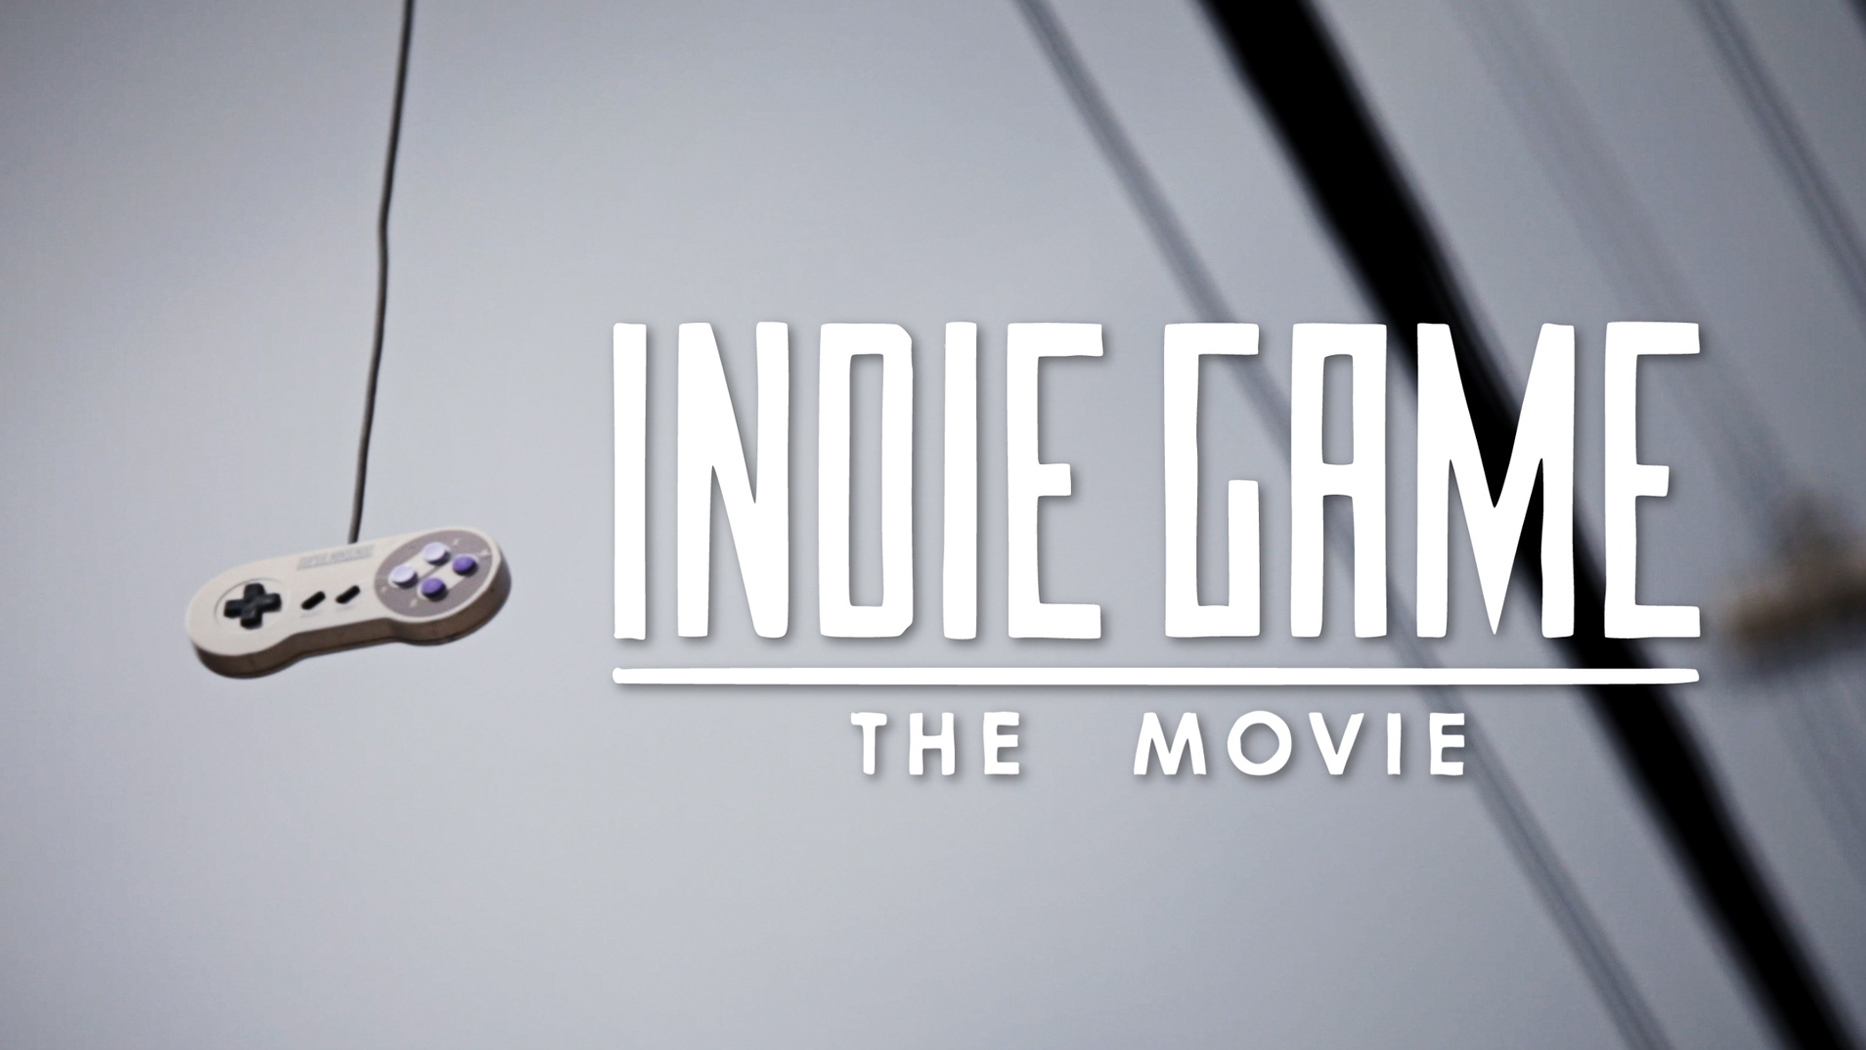 Indie Game: The Movie Shines a New Light on Game Development